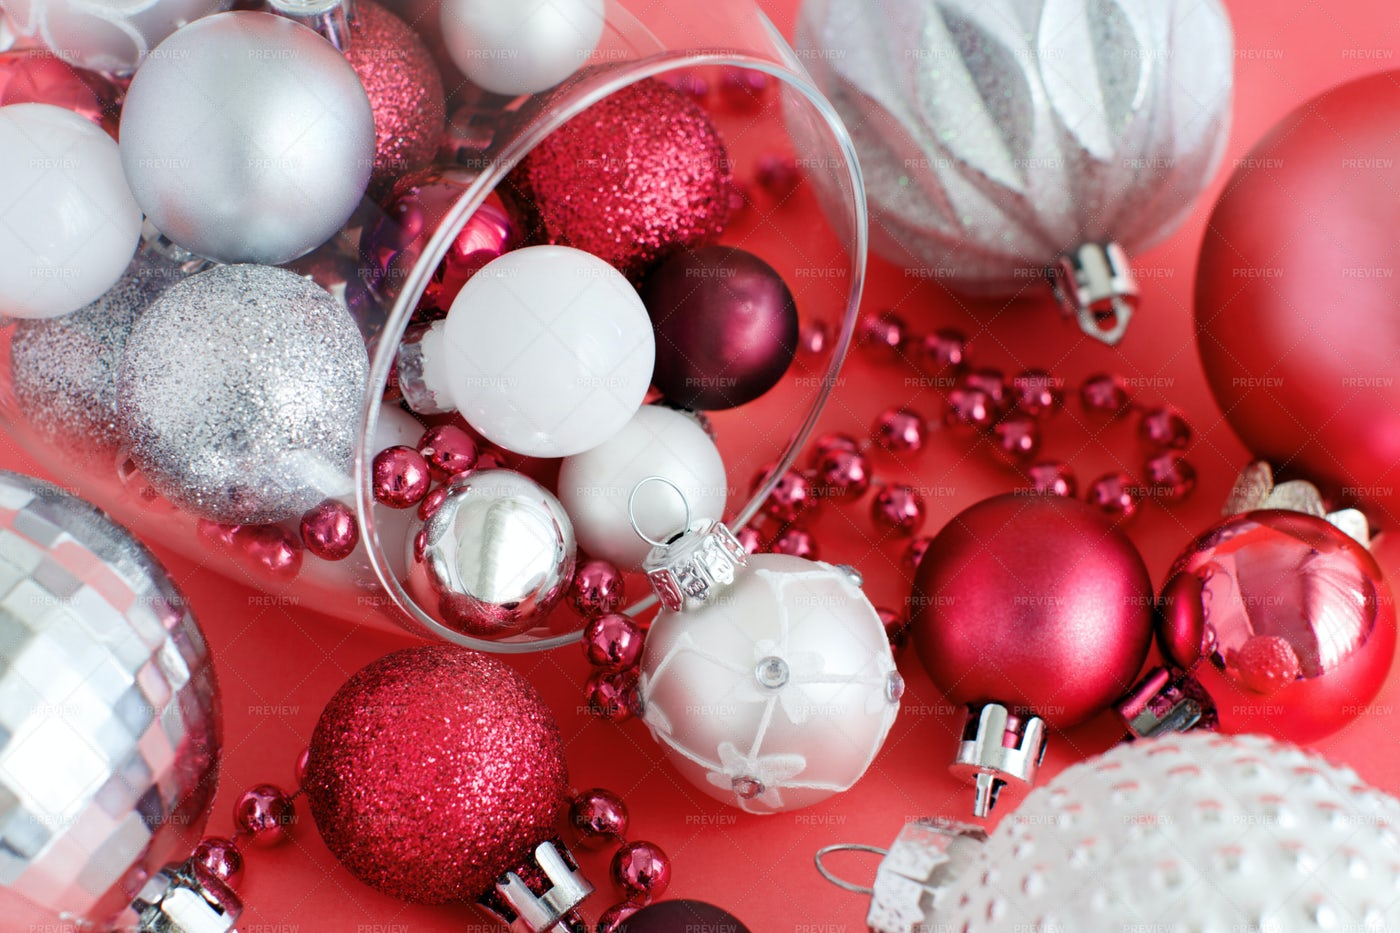 Christmas Decorations On Red: Stock Photos